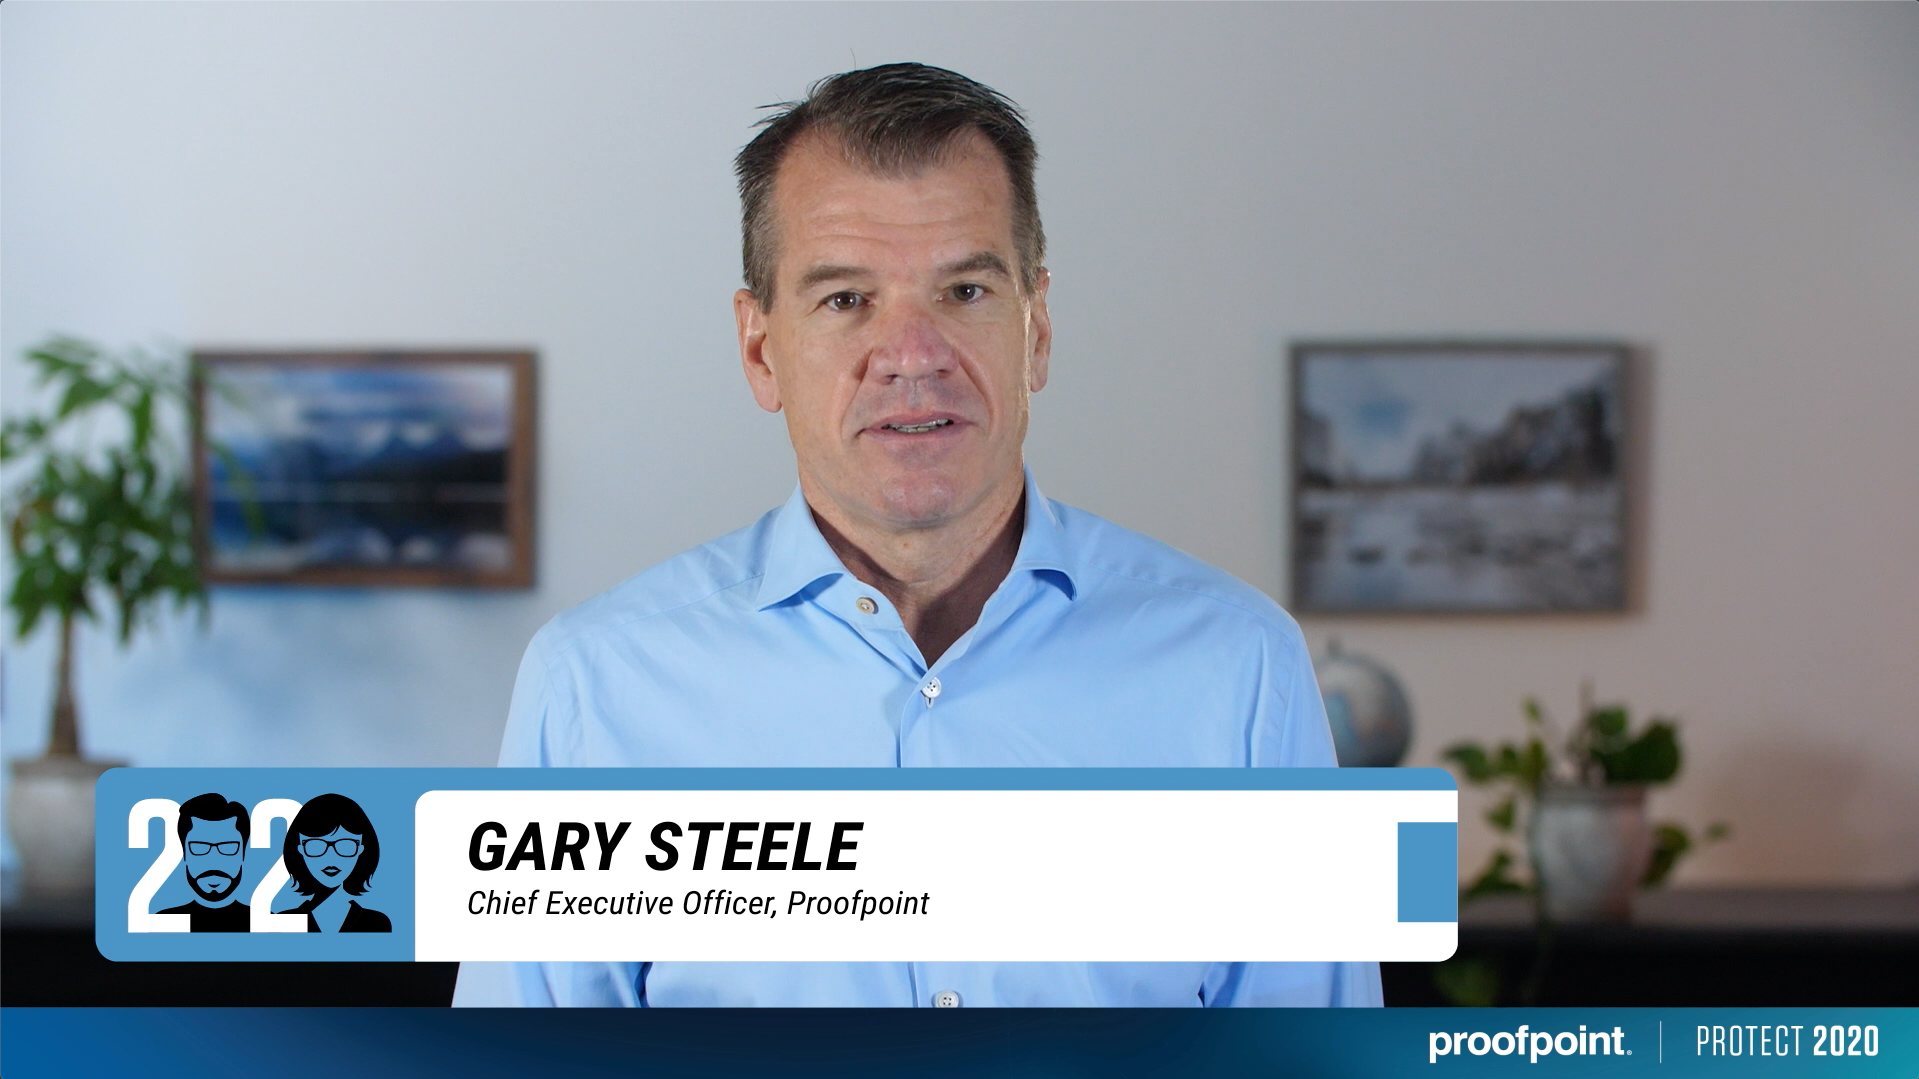 Gary Steele, CEO of Proofpoint